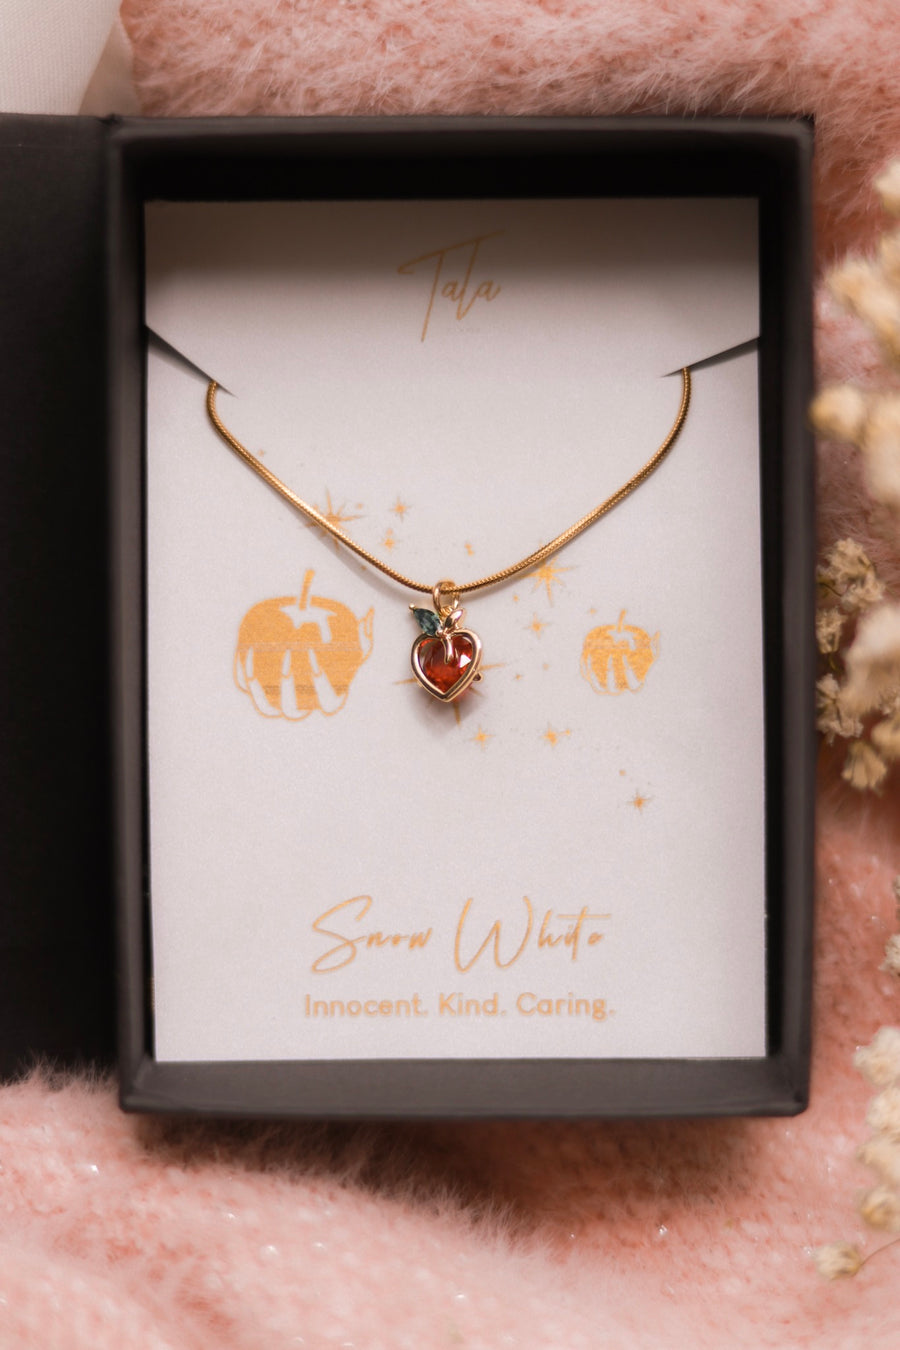 Snow White's Heart Apple Necklace